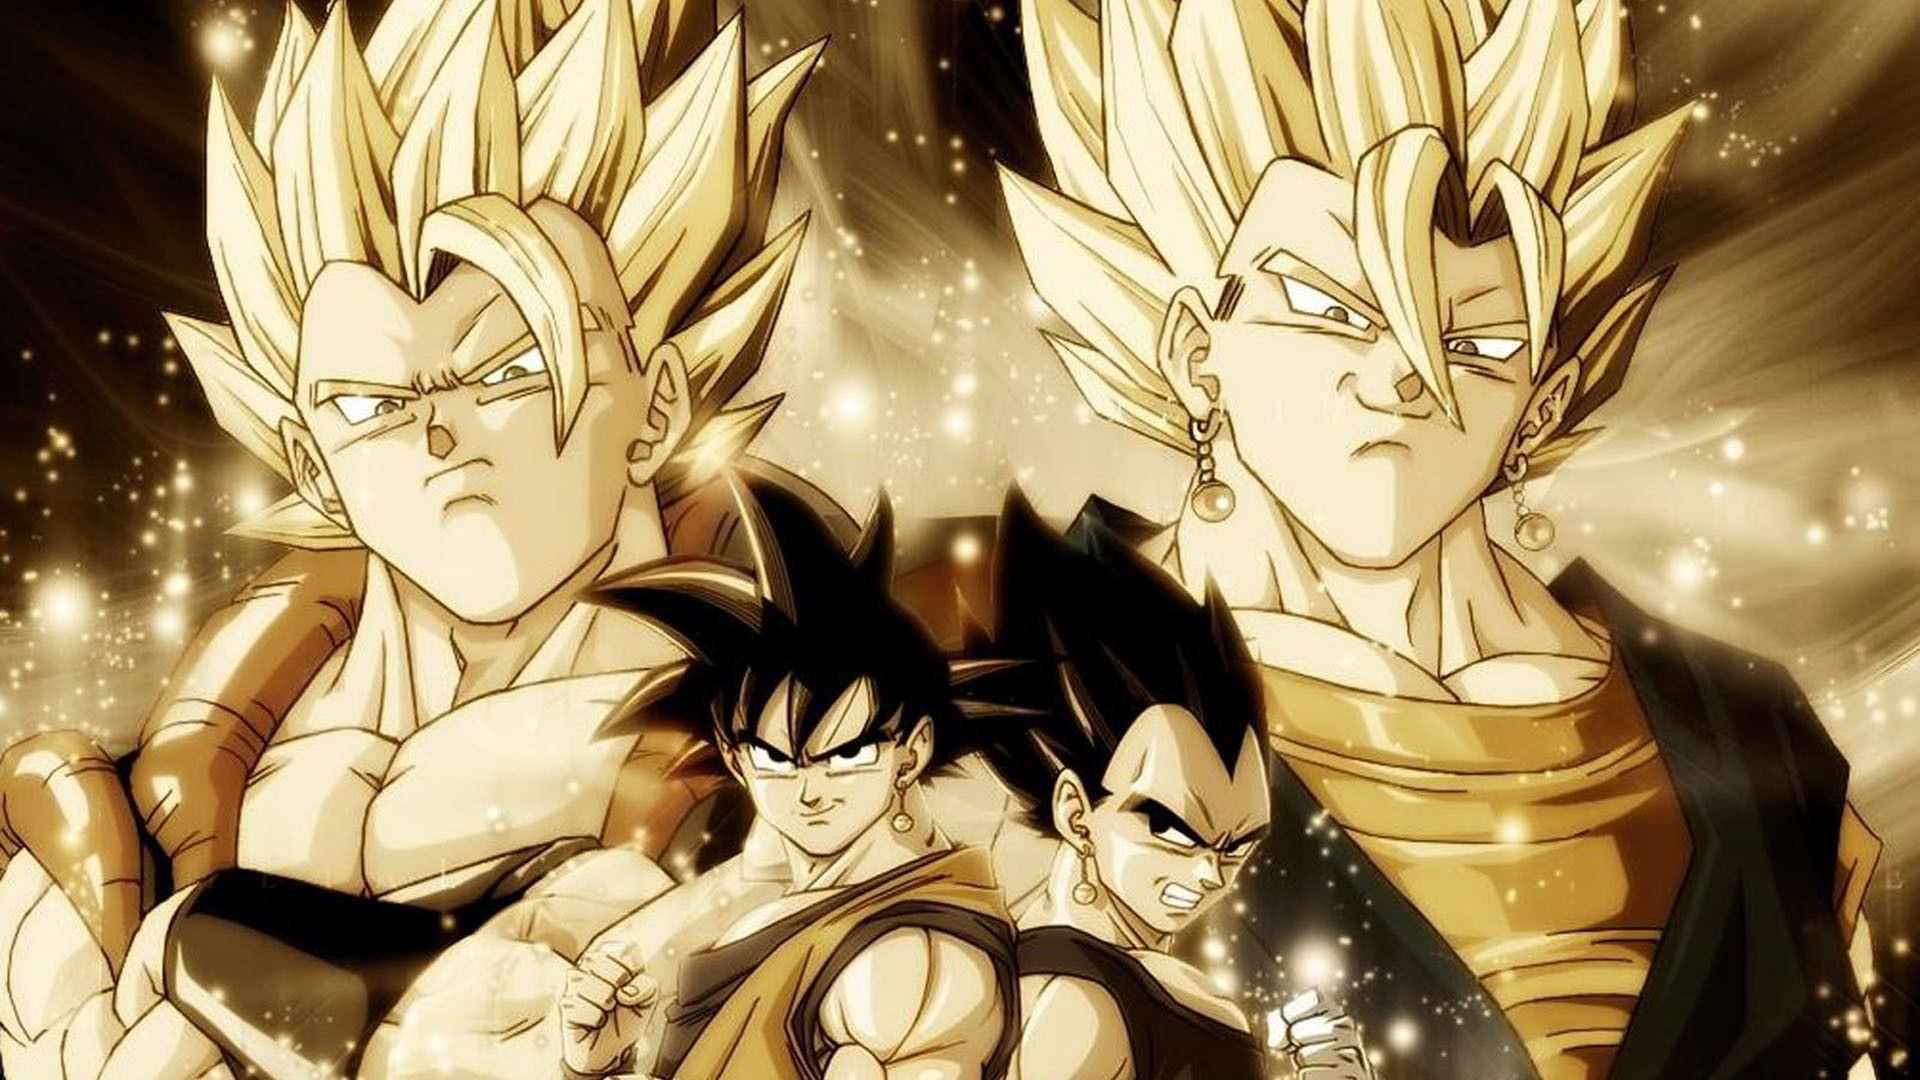 1920x1080 dbz hd wallpaper 1920x1080 | dragon ball art | pinterest